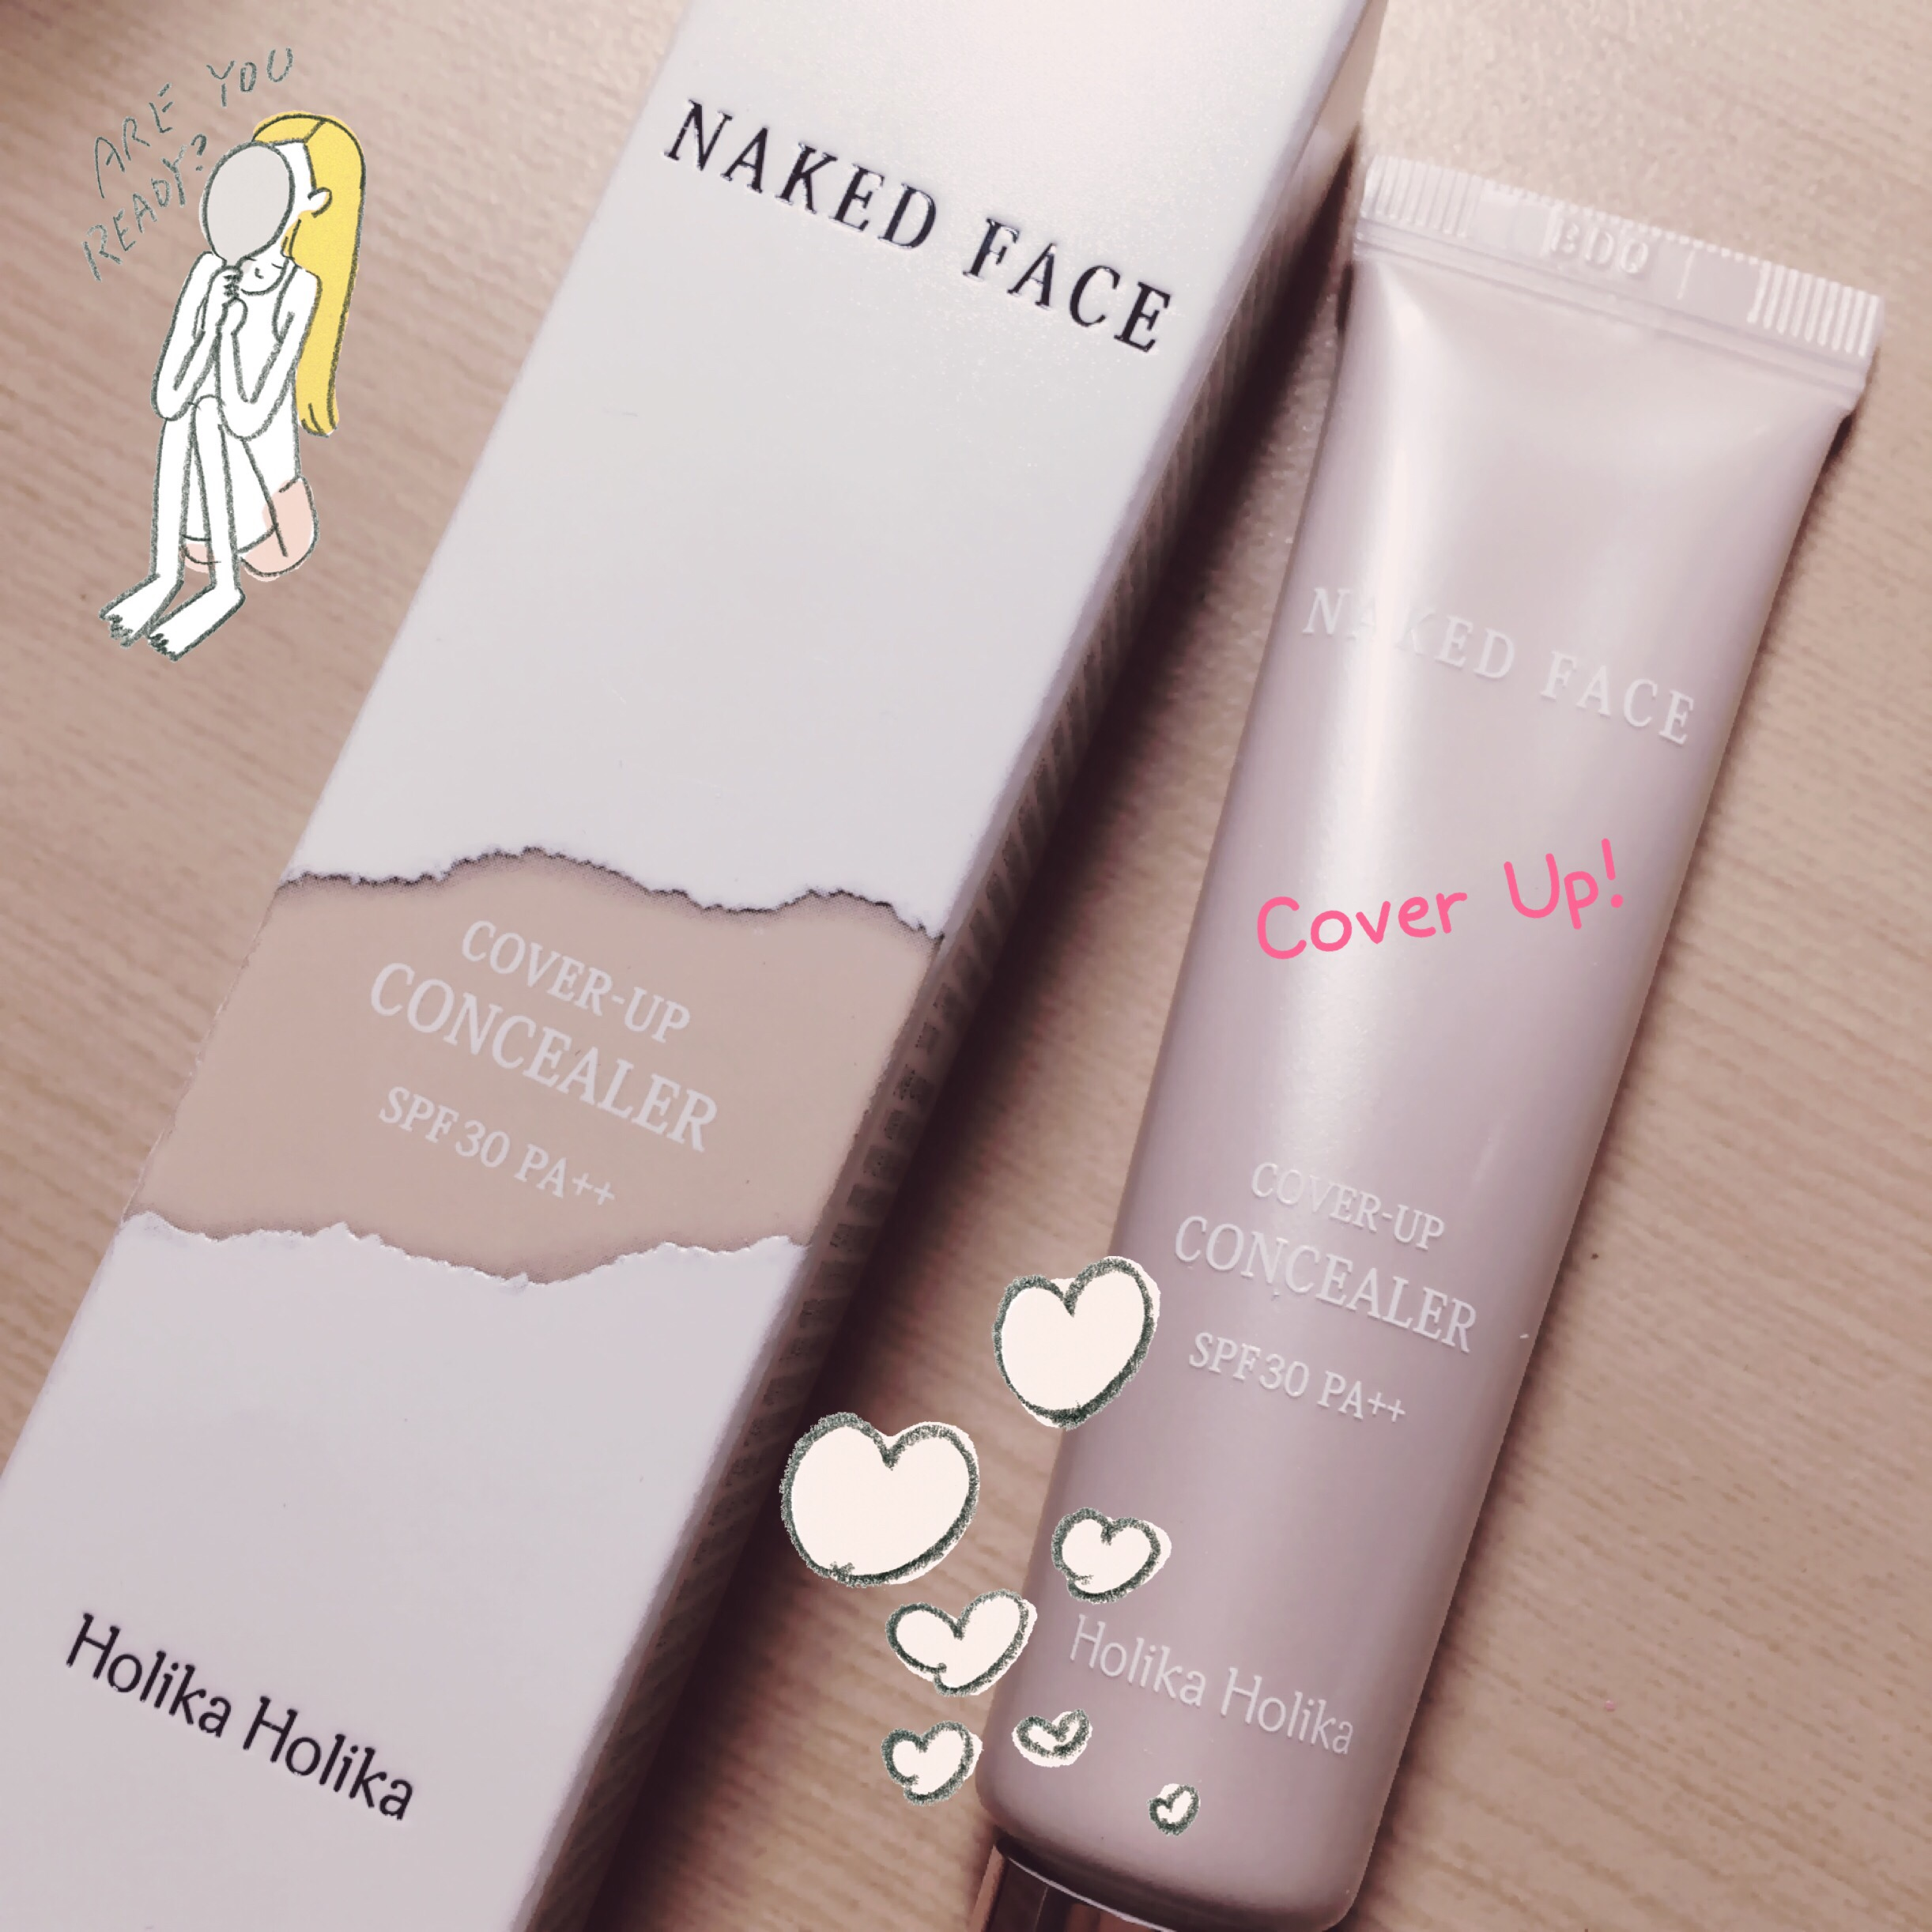 Holika Holika Naked Face